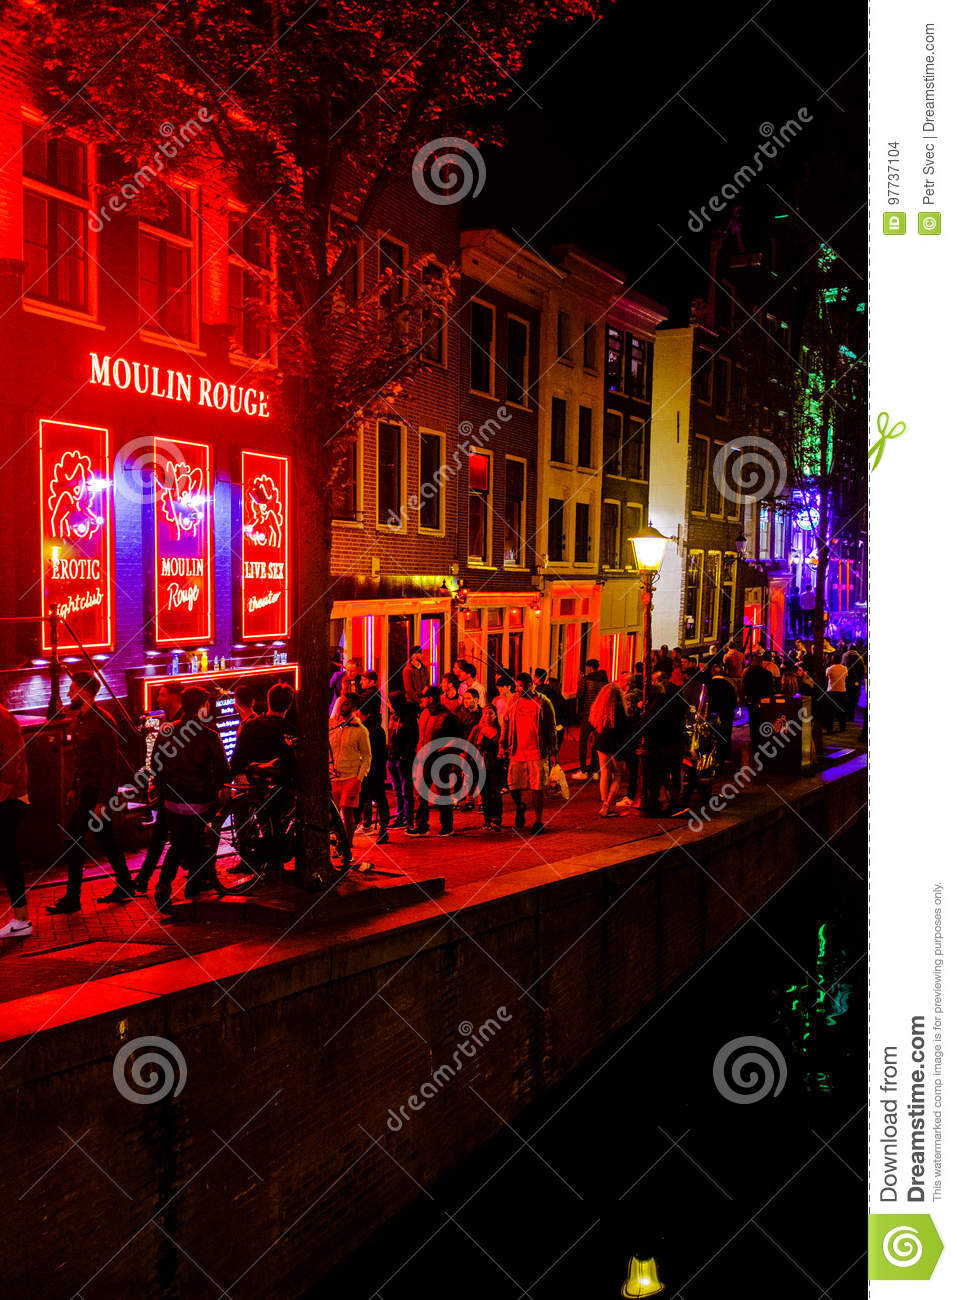 Amsterdam red light district editorial stock image image of canal one of the canal streets with bars and shops in the famous red light district in downtown amsterdam netherlands aloadofball Image collections